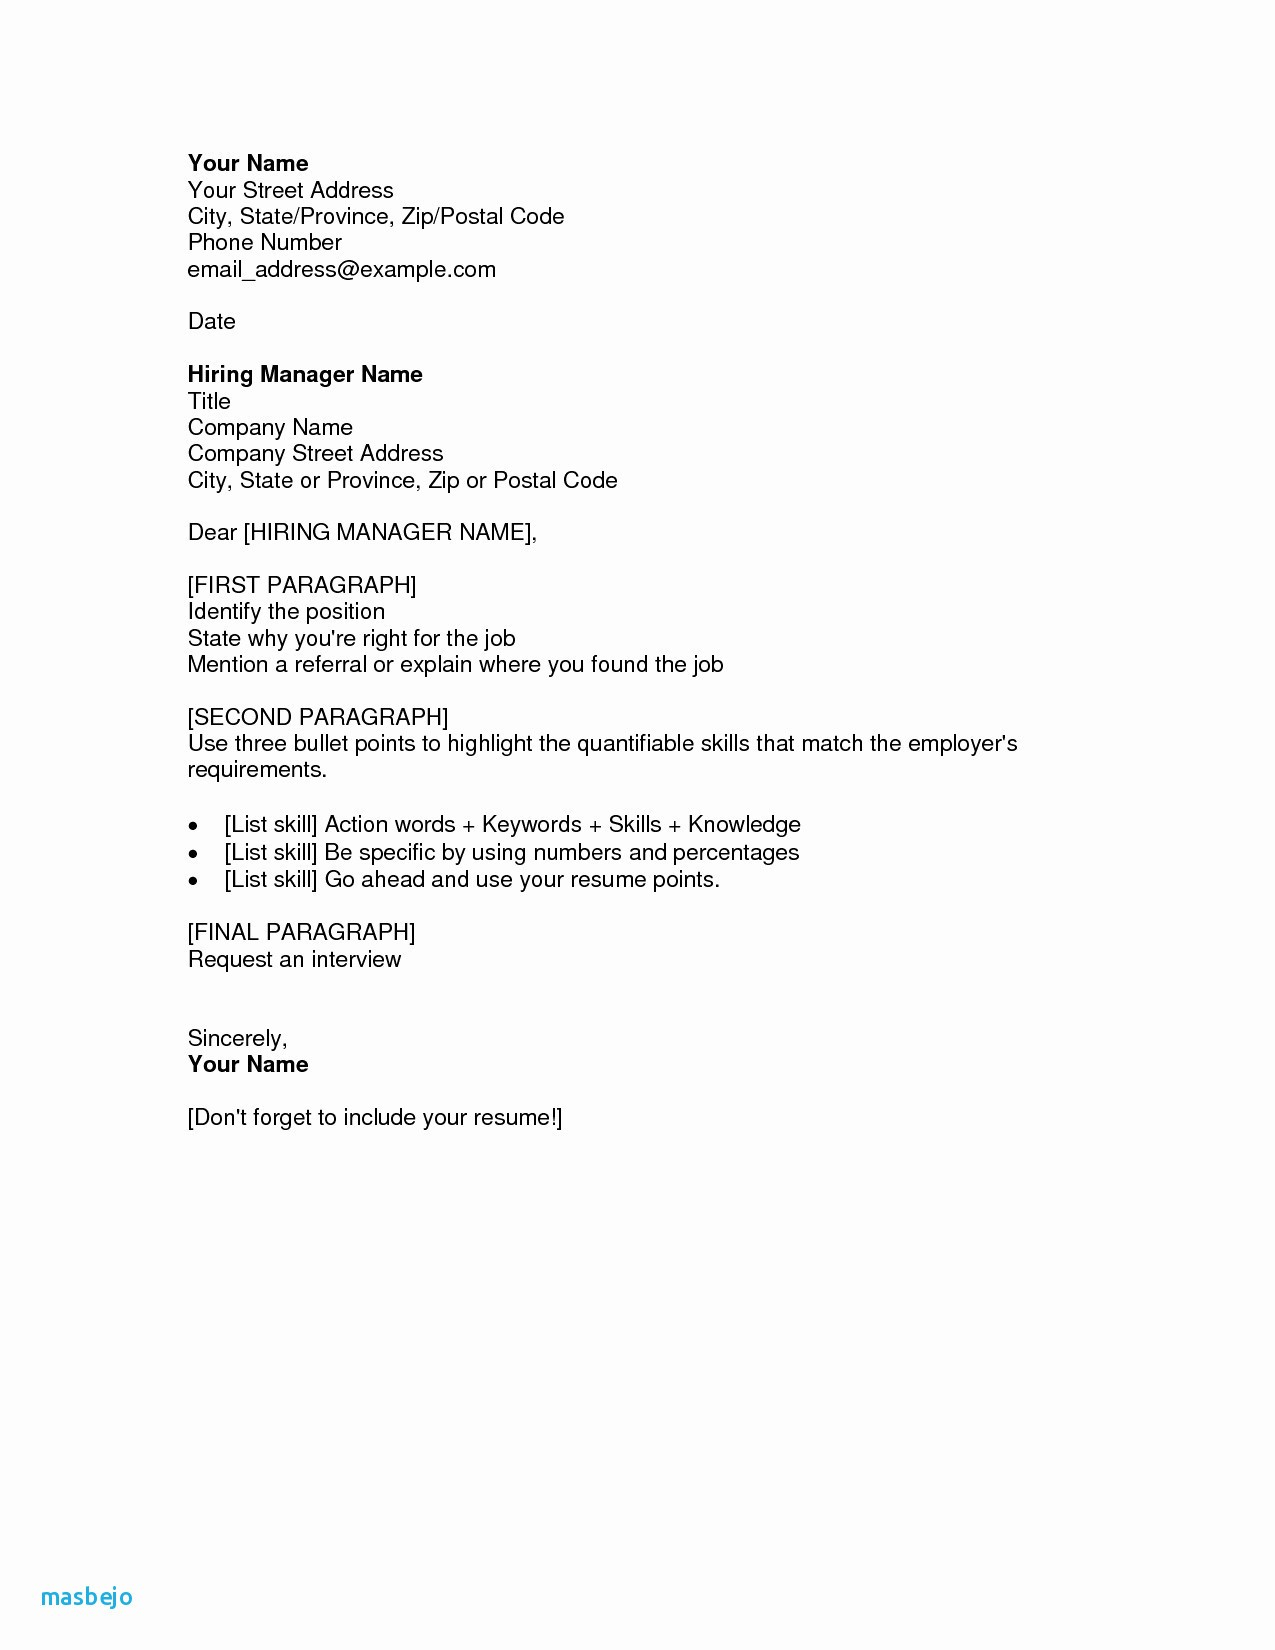 Banking Skills for Resume - Resume for A Banking Job that You Need to Appreciate Resume Insight